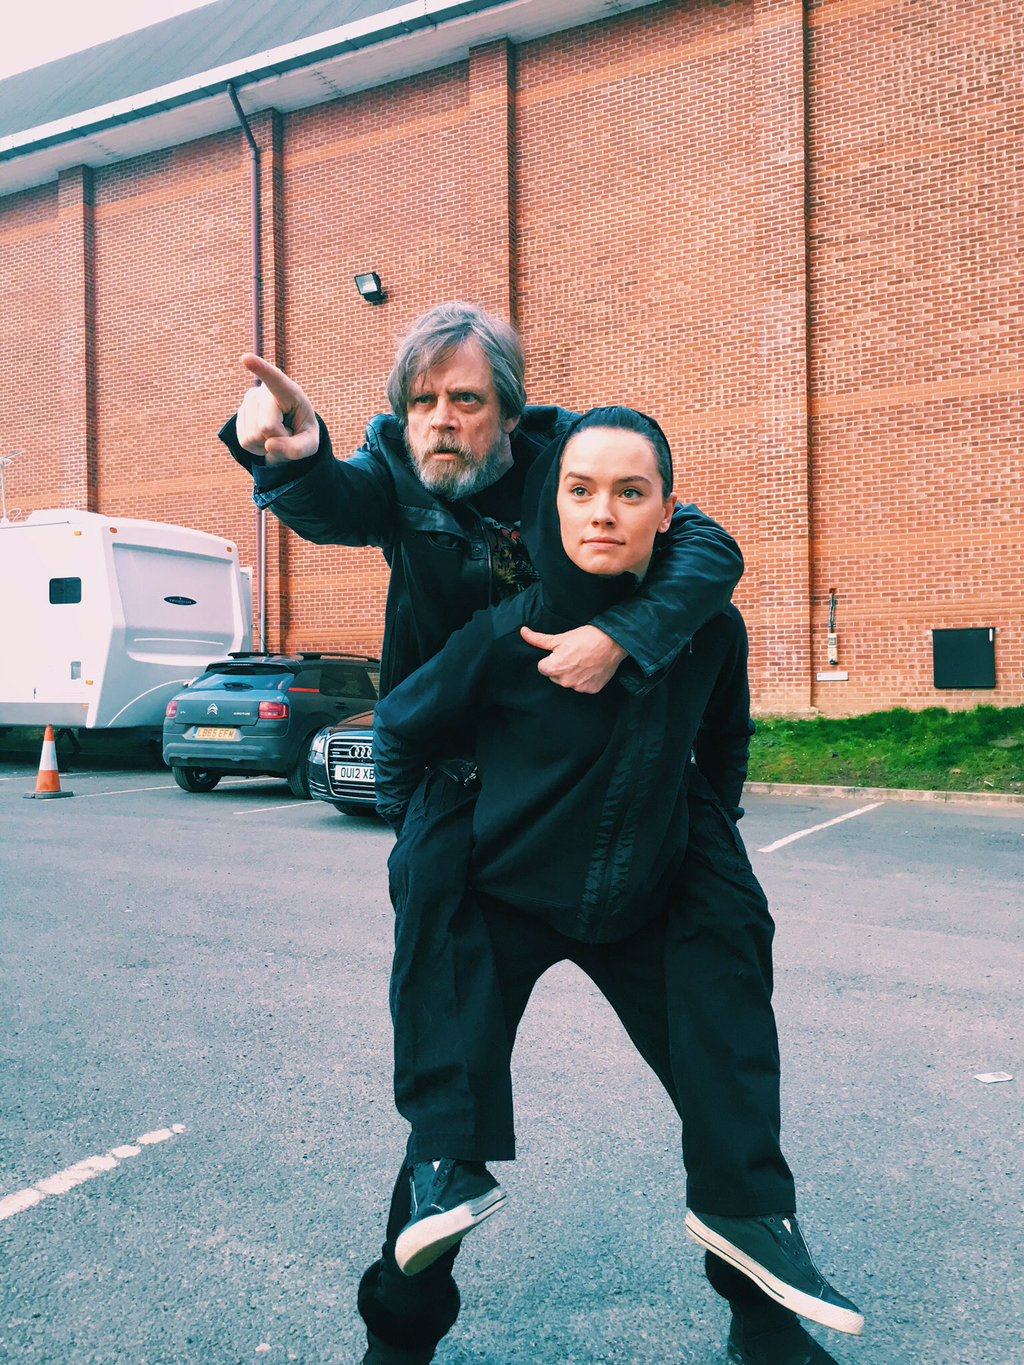 Mark Hamill just posted this on Twitter